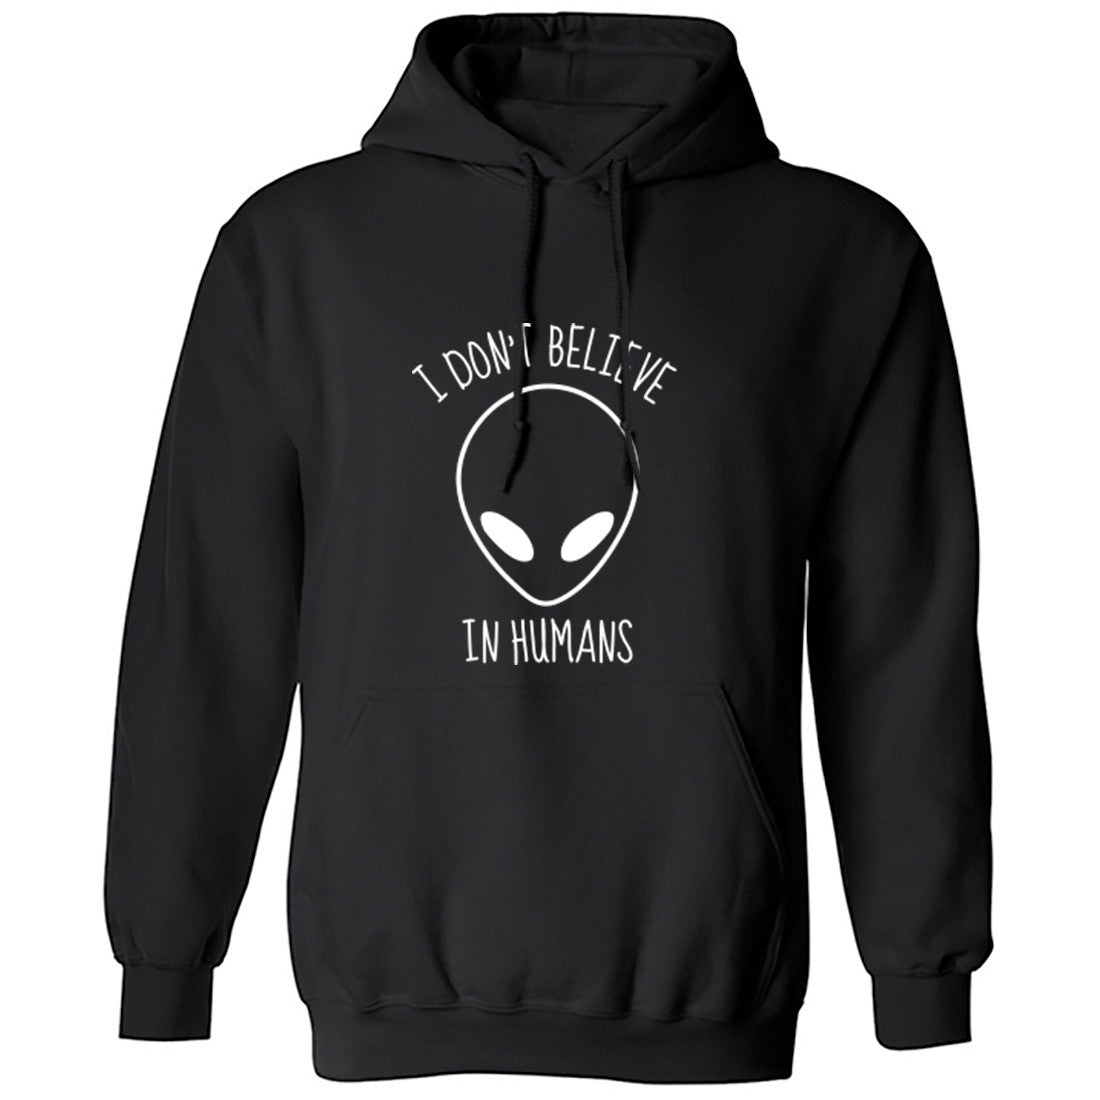 I Don't Believe In Humans Unisex Hoodie K0173 - Illustrated Identity Ltd.